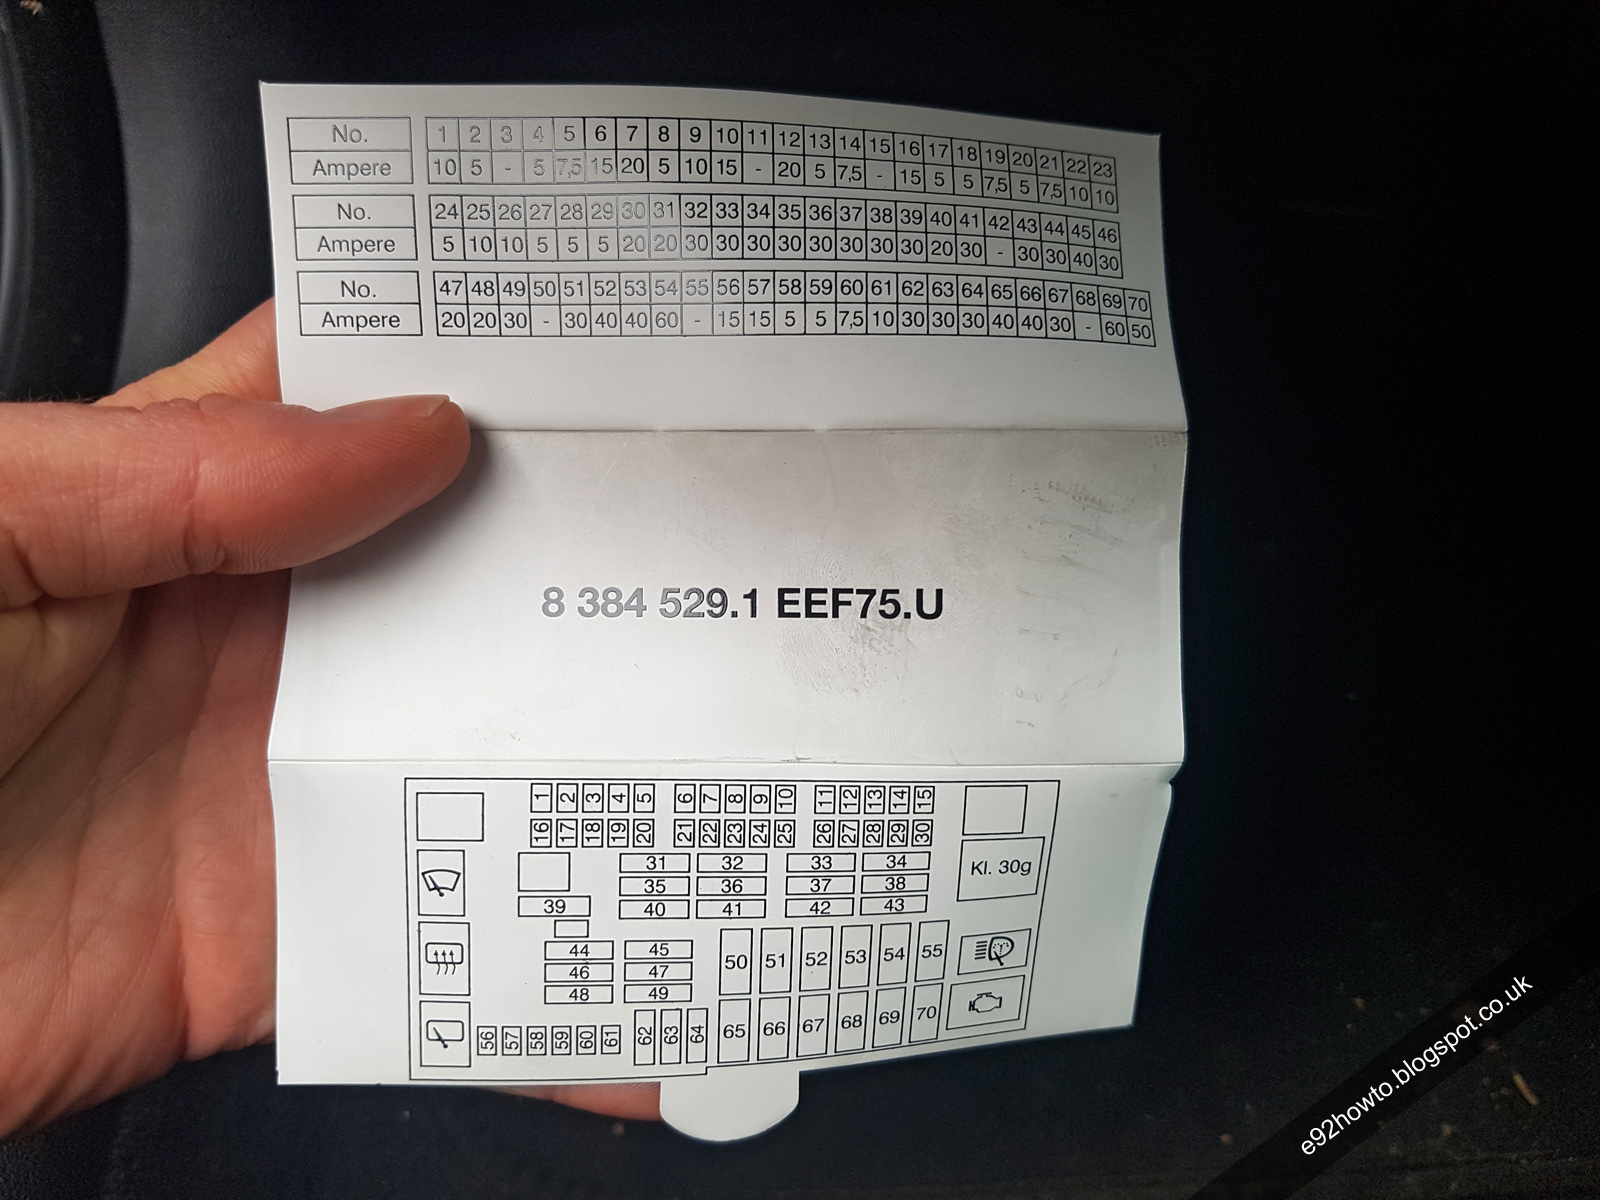 bmw e92 how to guides fuses  interior  location bmw 1 series fuse box location 2013 bmw 1 series fuse box location 2013 bmw 1 series fuse box location 2013 bmw 1 series fuse box location 2013